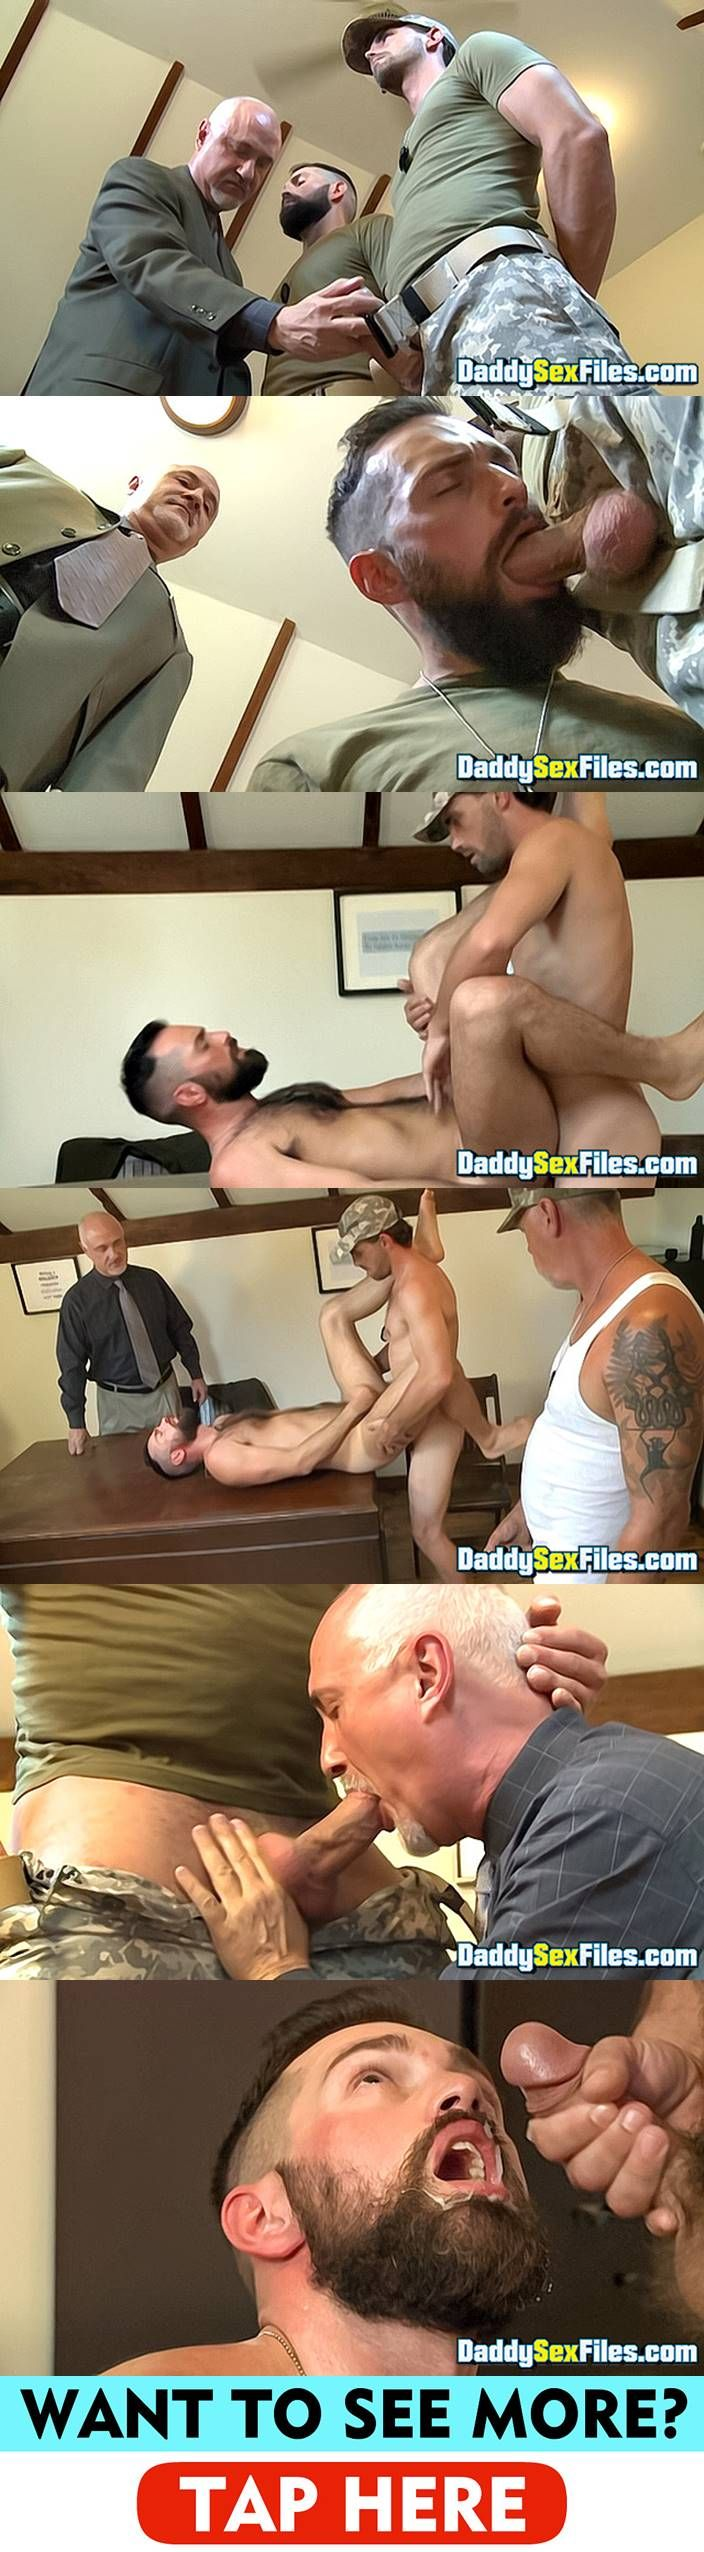 Daddy Sex Files: Joe Parker, Jake Cruise & More